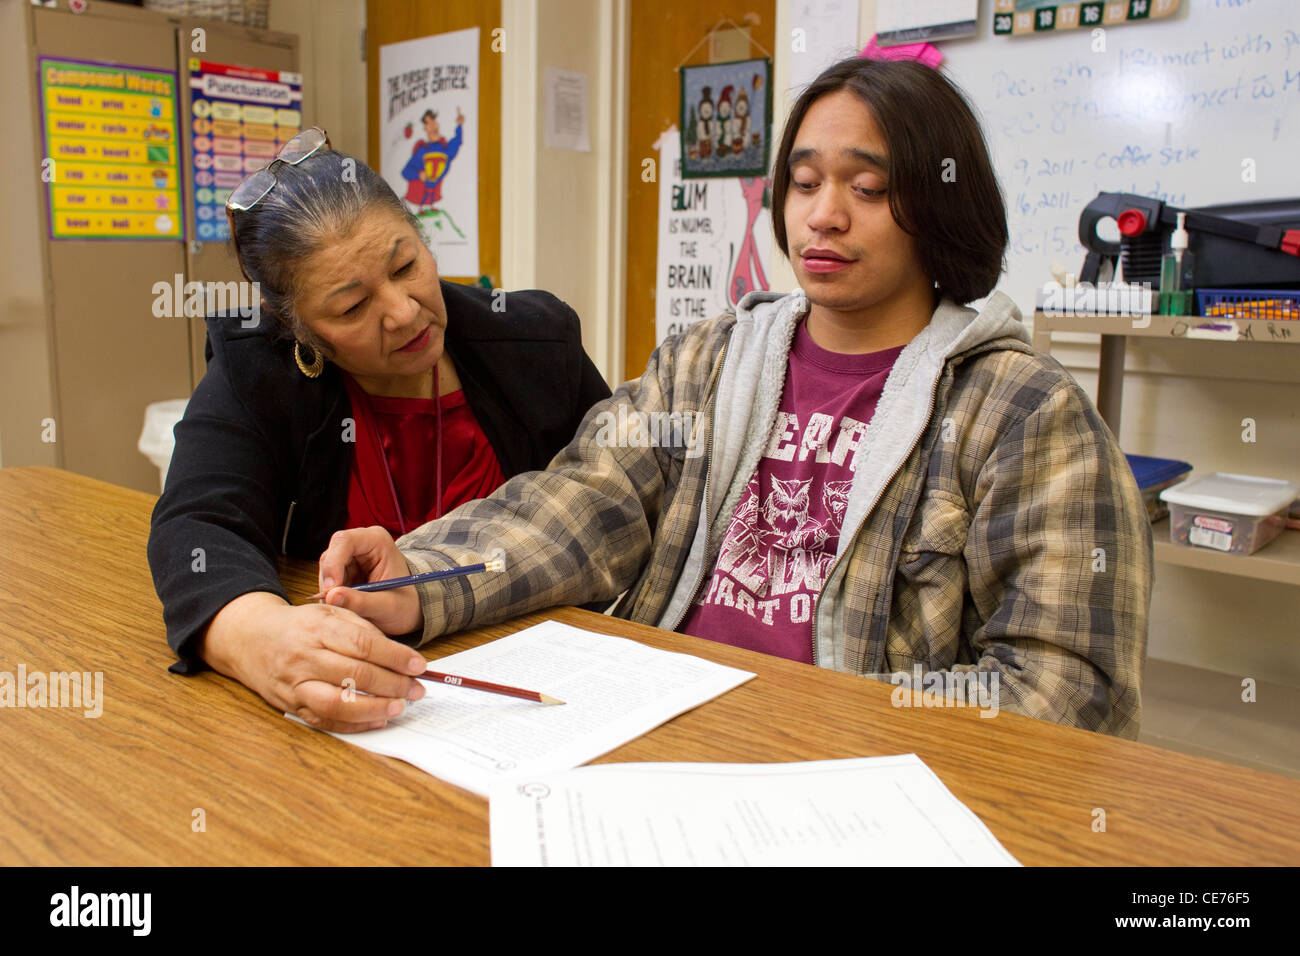 Hispanic female teacher in class works one-on-one with autistic teenage high school students - Stock Image